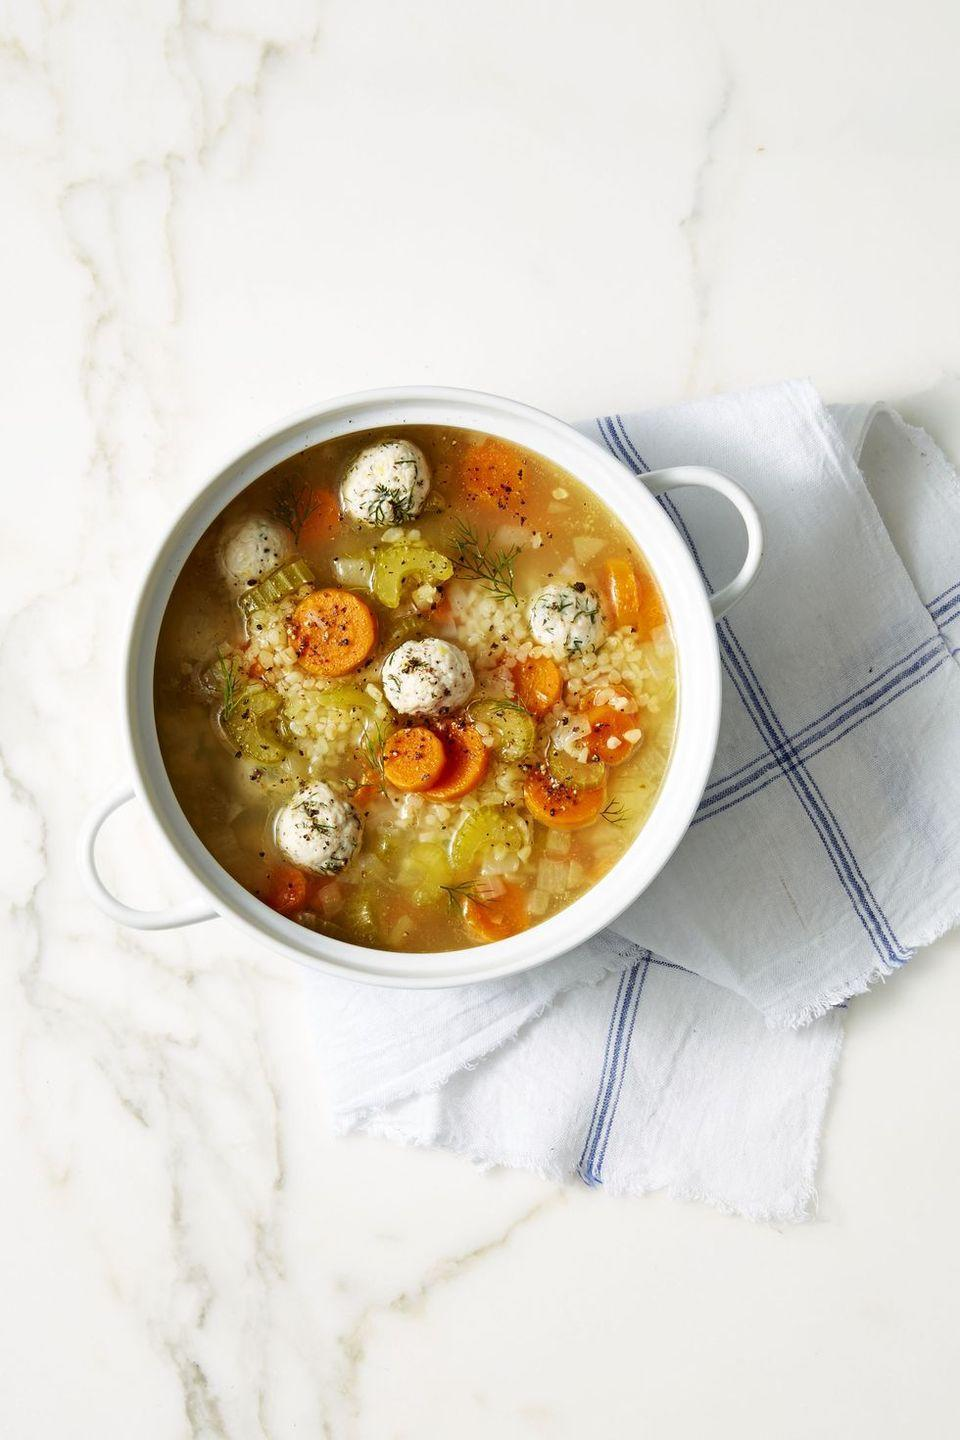 "<p>Cozy chicken noodle soup gets a makeover with bulgar wheat and herby chicken meatballs.</p><p><em><a href=""https://www.goodhousekeeping.com/food-recipes/healthy/a42187/lemon-dill-chicken-meatball-soup-recipe/"" rel=""nofollow noopener"" target=""_blank"" data-ylk=""slk:Get the recipe for Lemon-Dill Chicken Meatball Soup »"" class=""link rapid-noclick-resp"">Get the recipe for Lemon-Dill Chicken Meatball Soup »</a></em></p><p><strong>RELATED:</strong> <a href=""https://www.goodhousekeeping.com/food-recipes/easy/g27927452/fall-soups/"" rel=""nofollow noopener"" target=""_blank"" data-ylk=""slk:21 Tasty Fall Soups for Chilly Autumn Nights"" class=""link rapid-noclick-resp"">21 Tasty Fall Soups for Chilly Autumn Nights</a><br></p>"